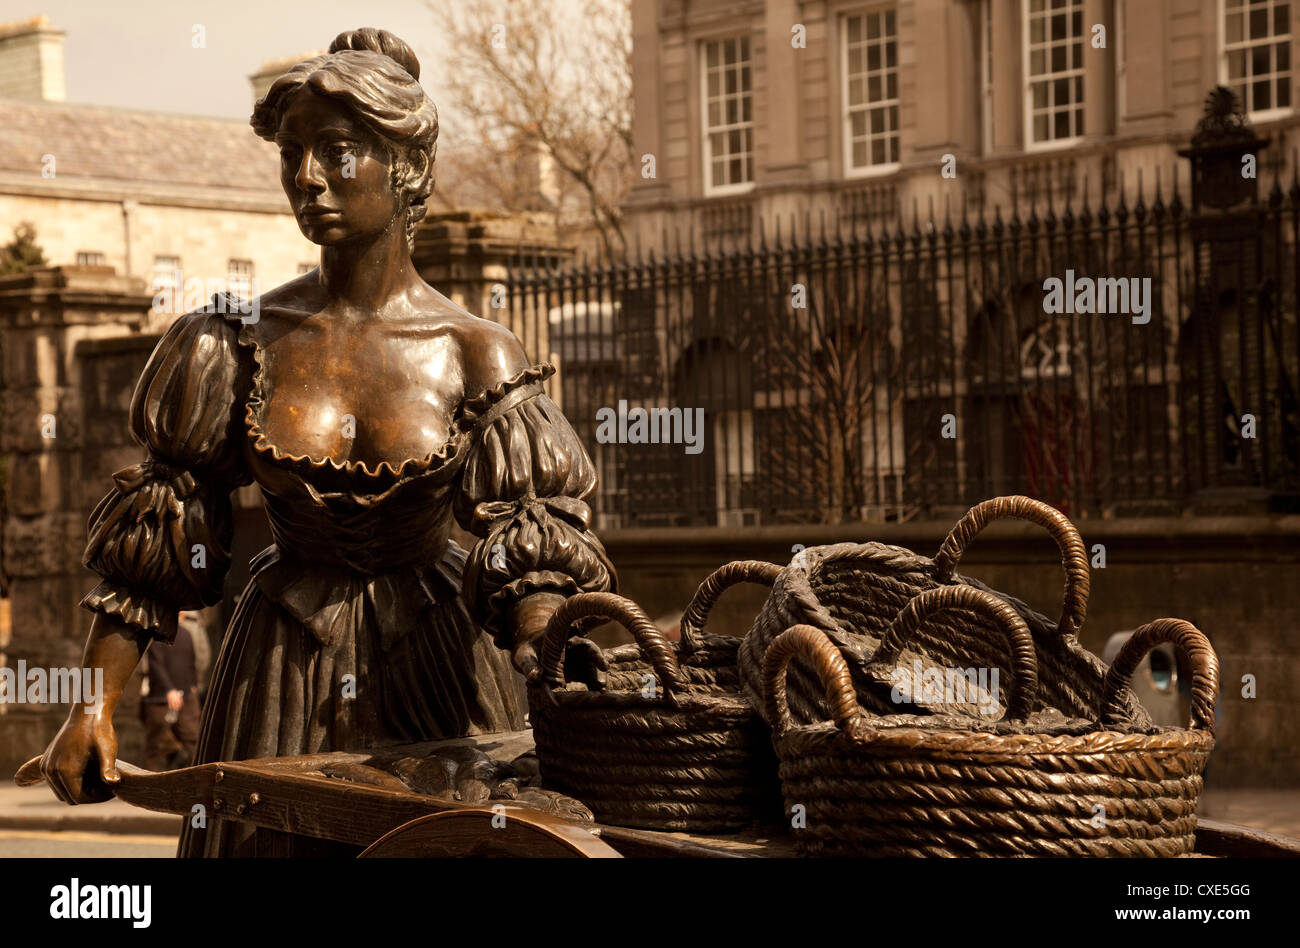 Statue of Molly Malone, Dublin, Ireland, Europe. - Stock Image